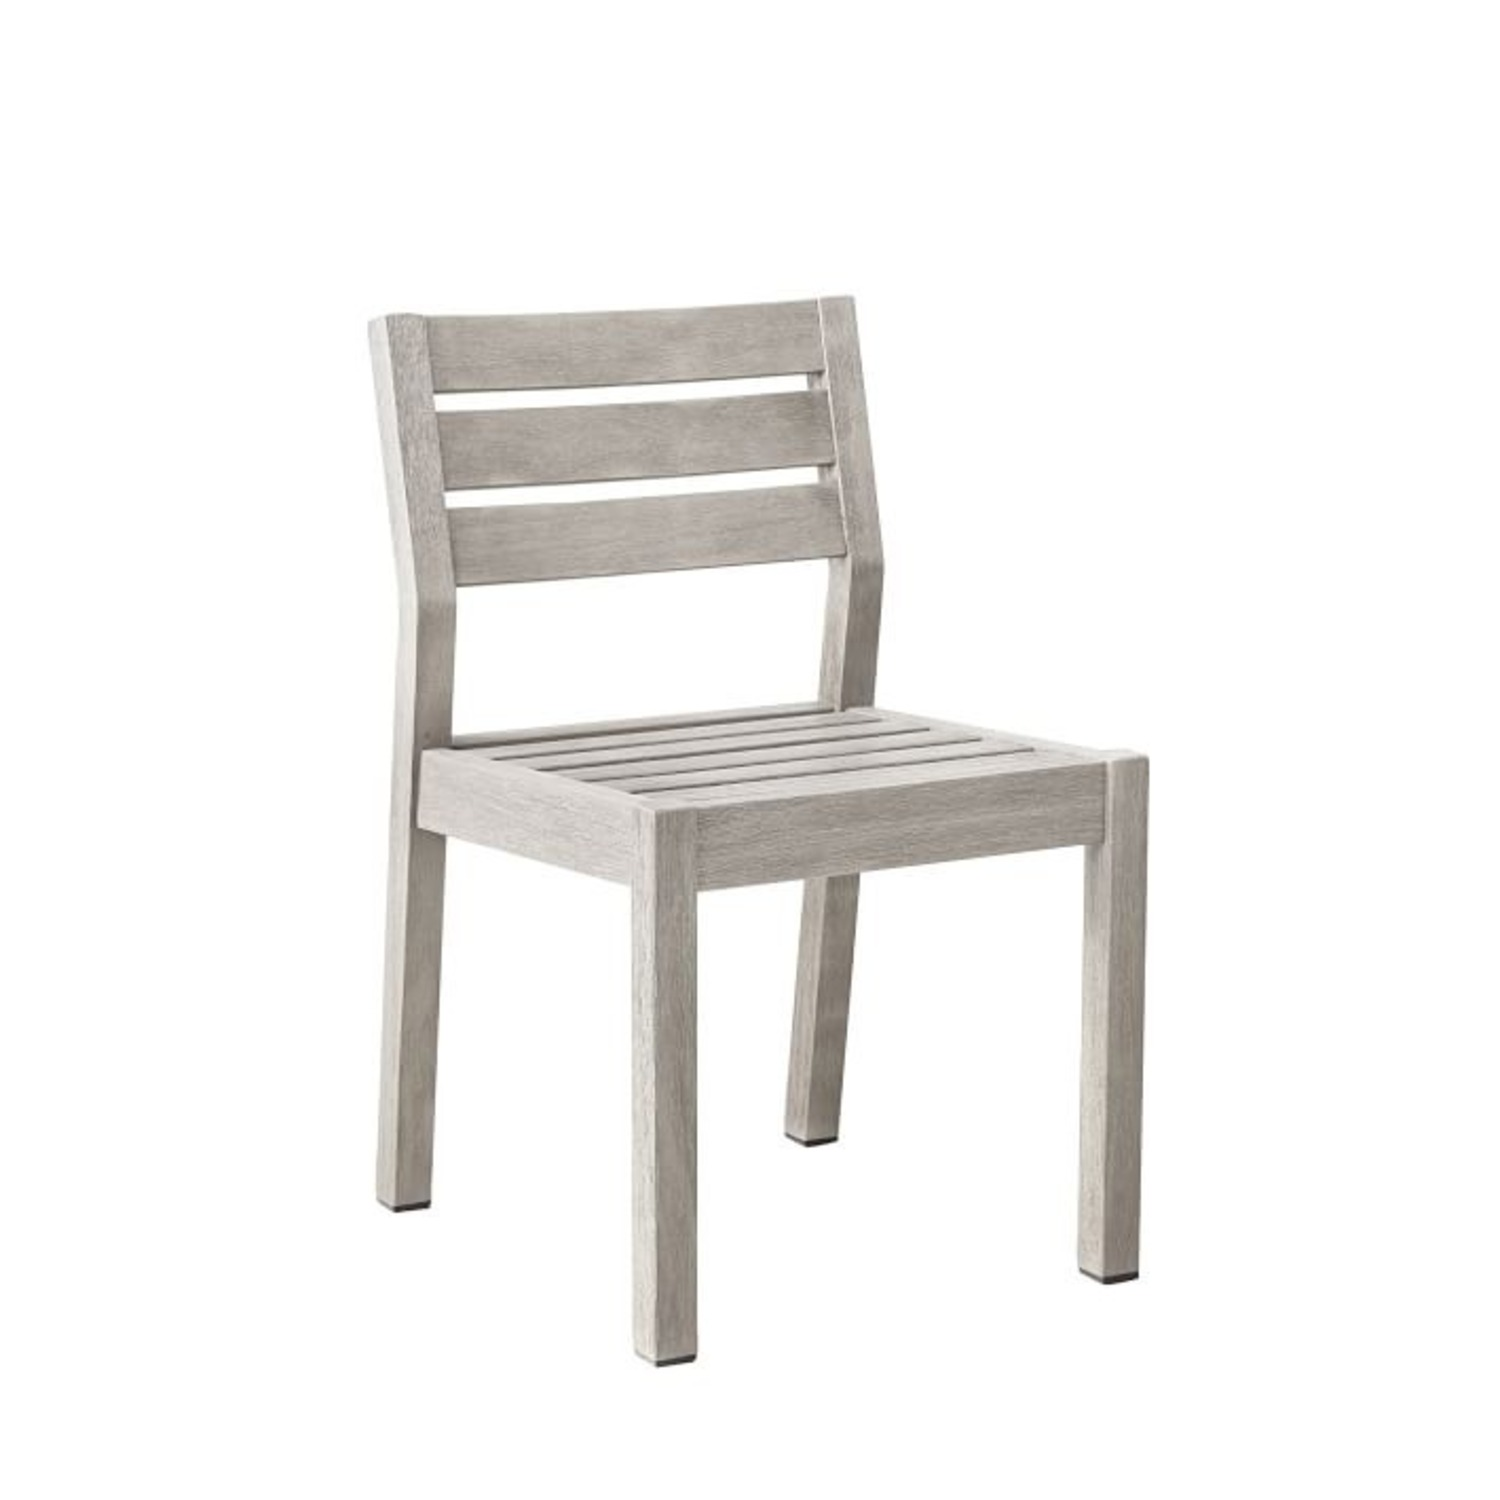 West Elm Portside Dining Chair - image-1